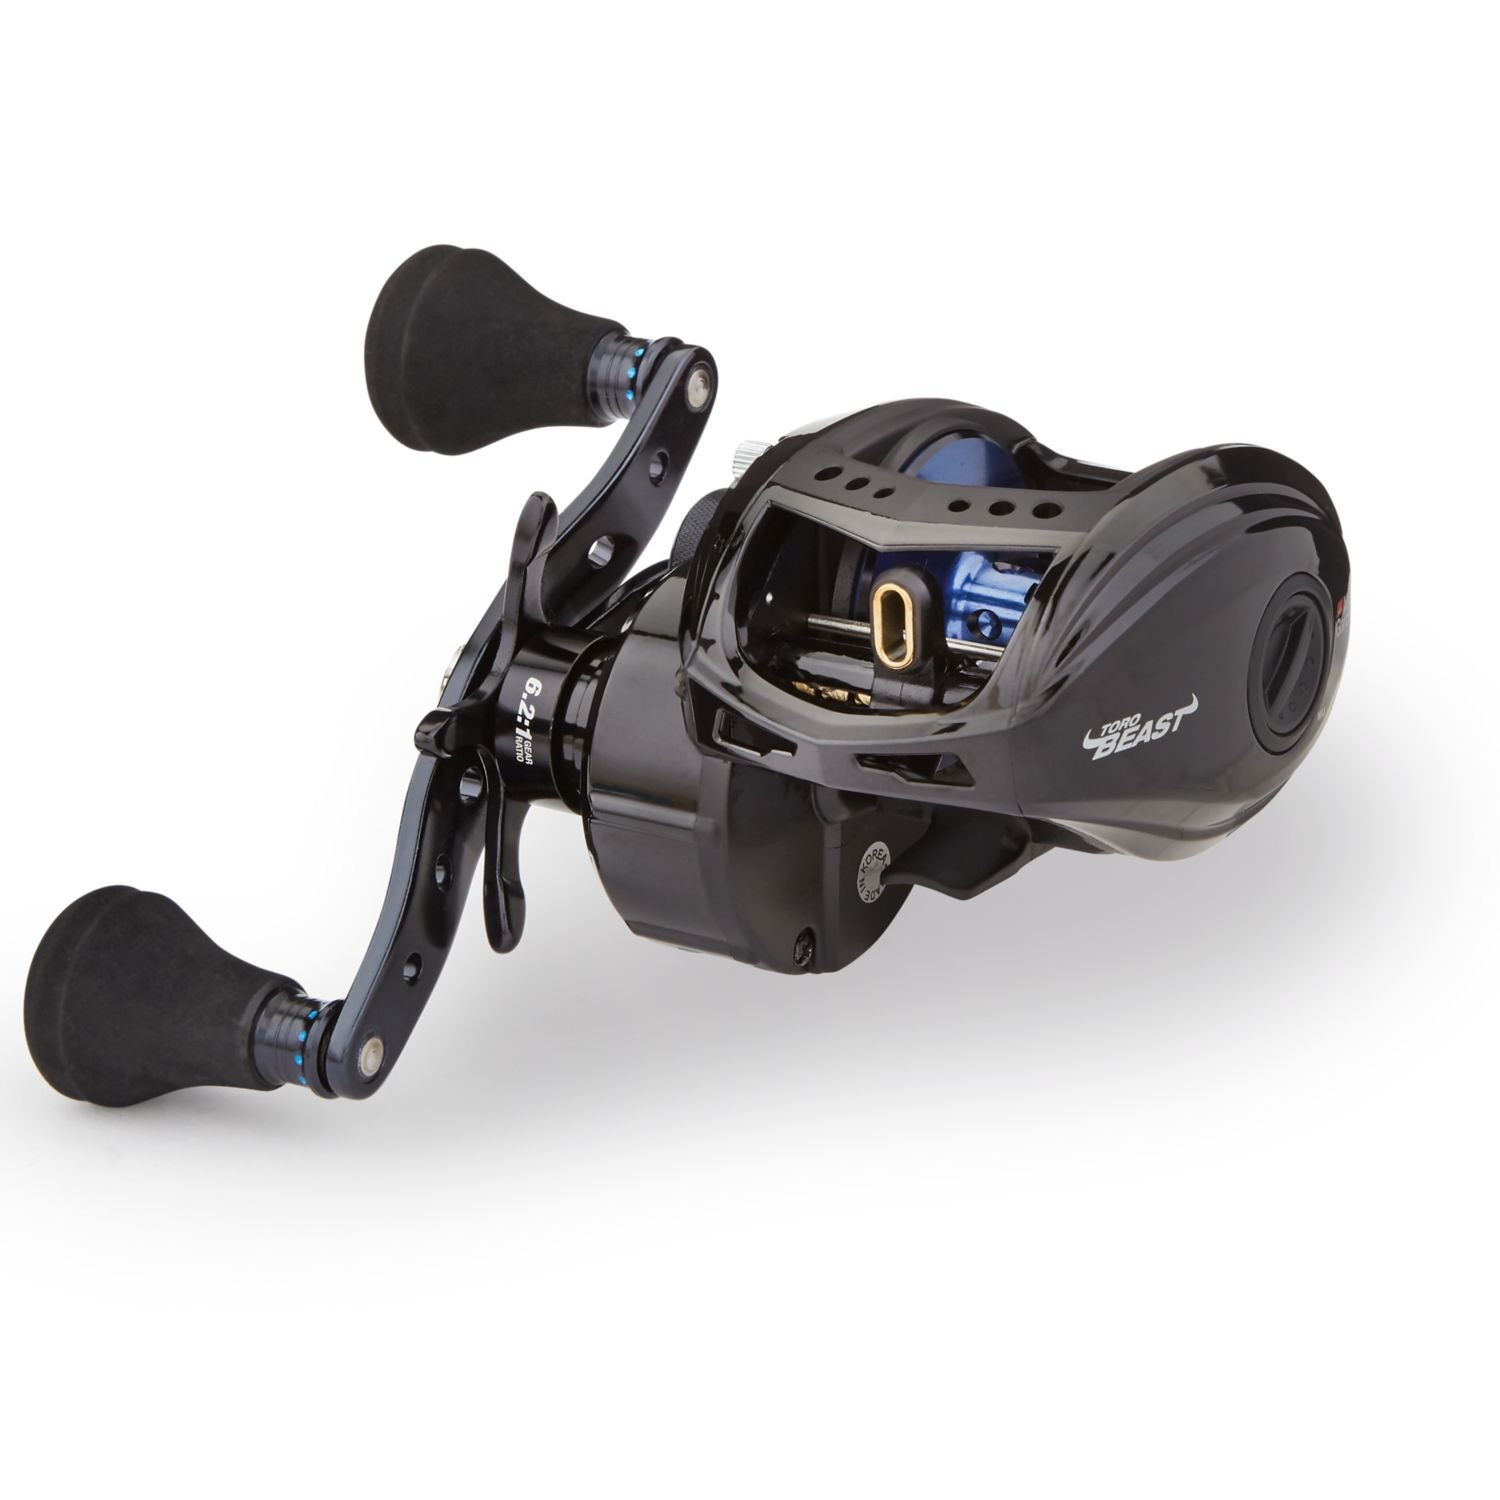 Best Musky Reel in 2018: Top Reviews and Buyer's Guide